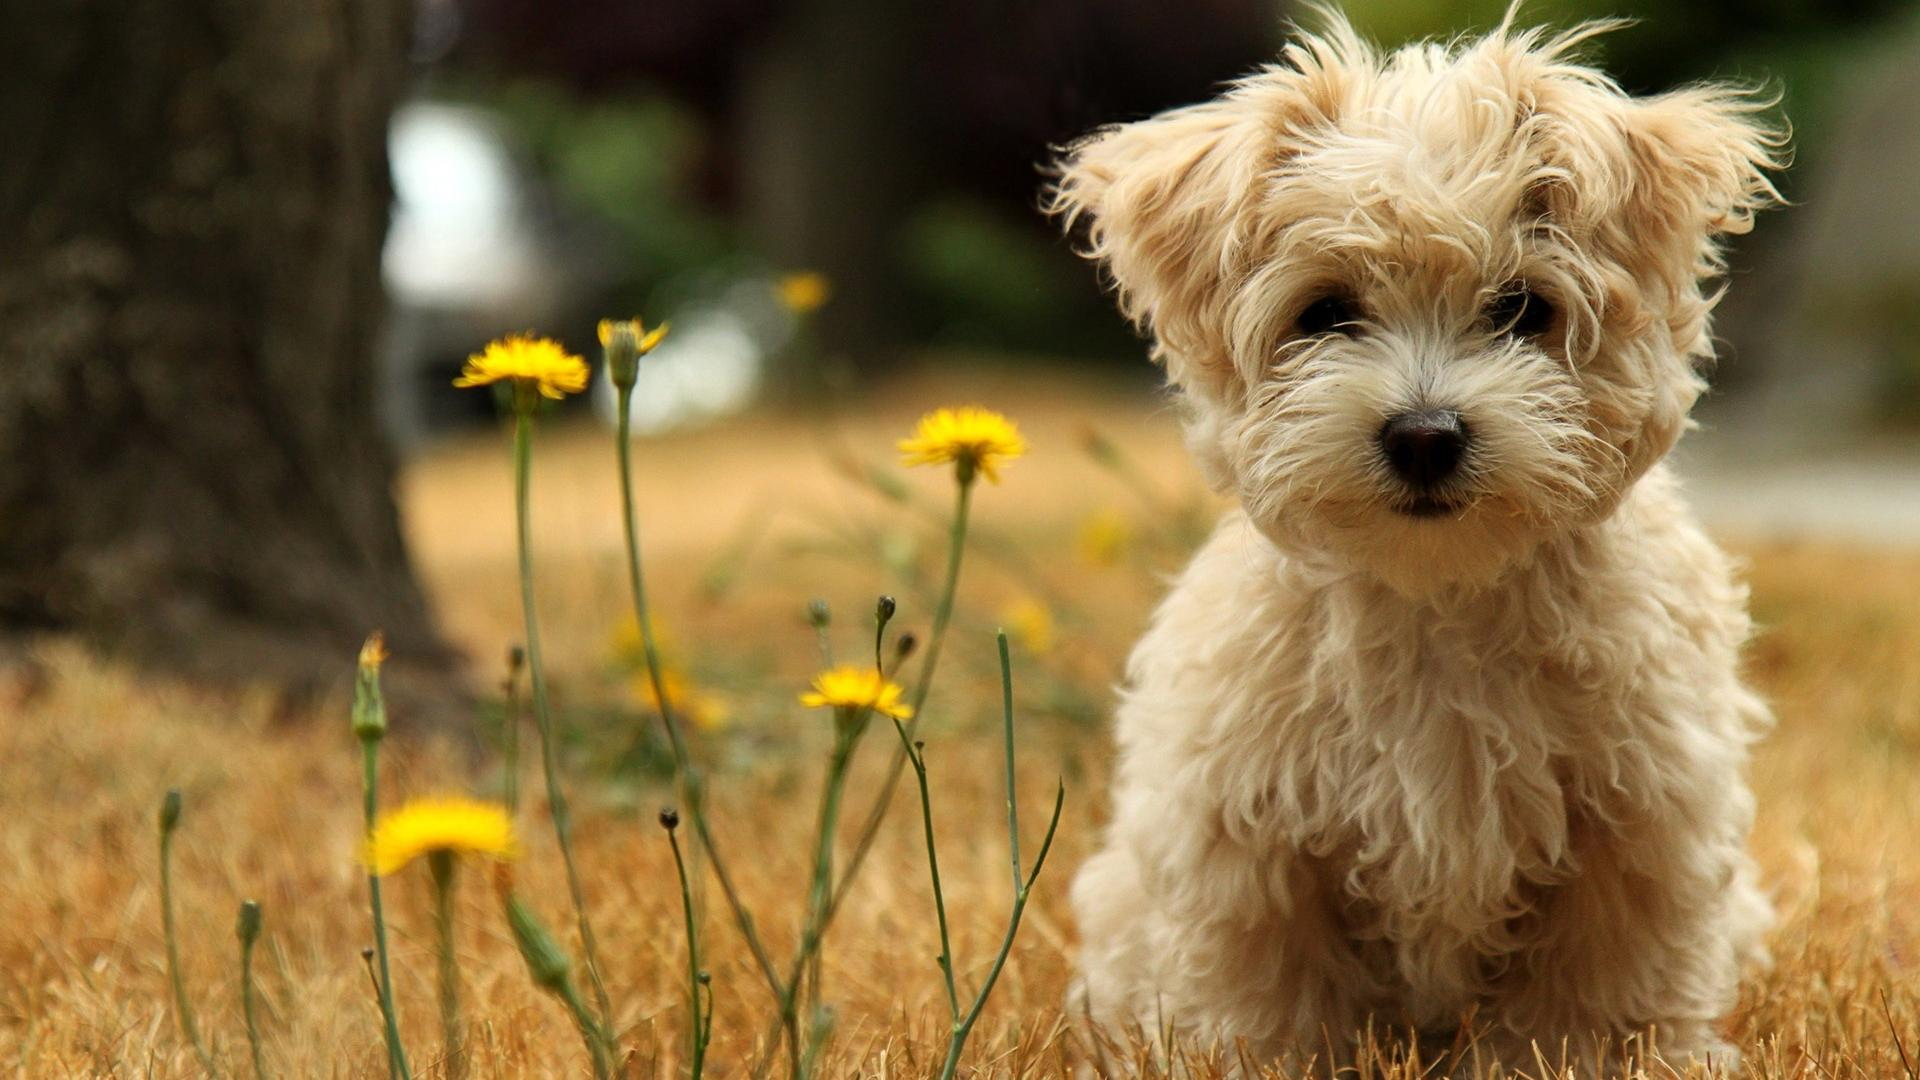 Cute-Dog-Pictures-Background-HD-Wallpaper